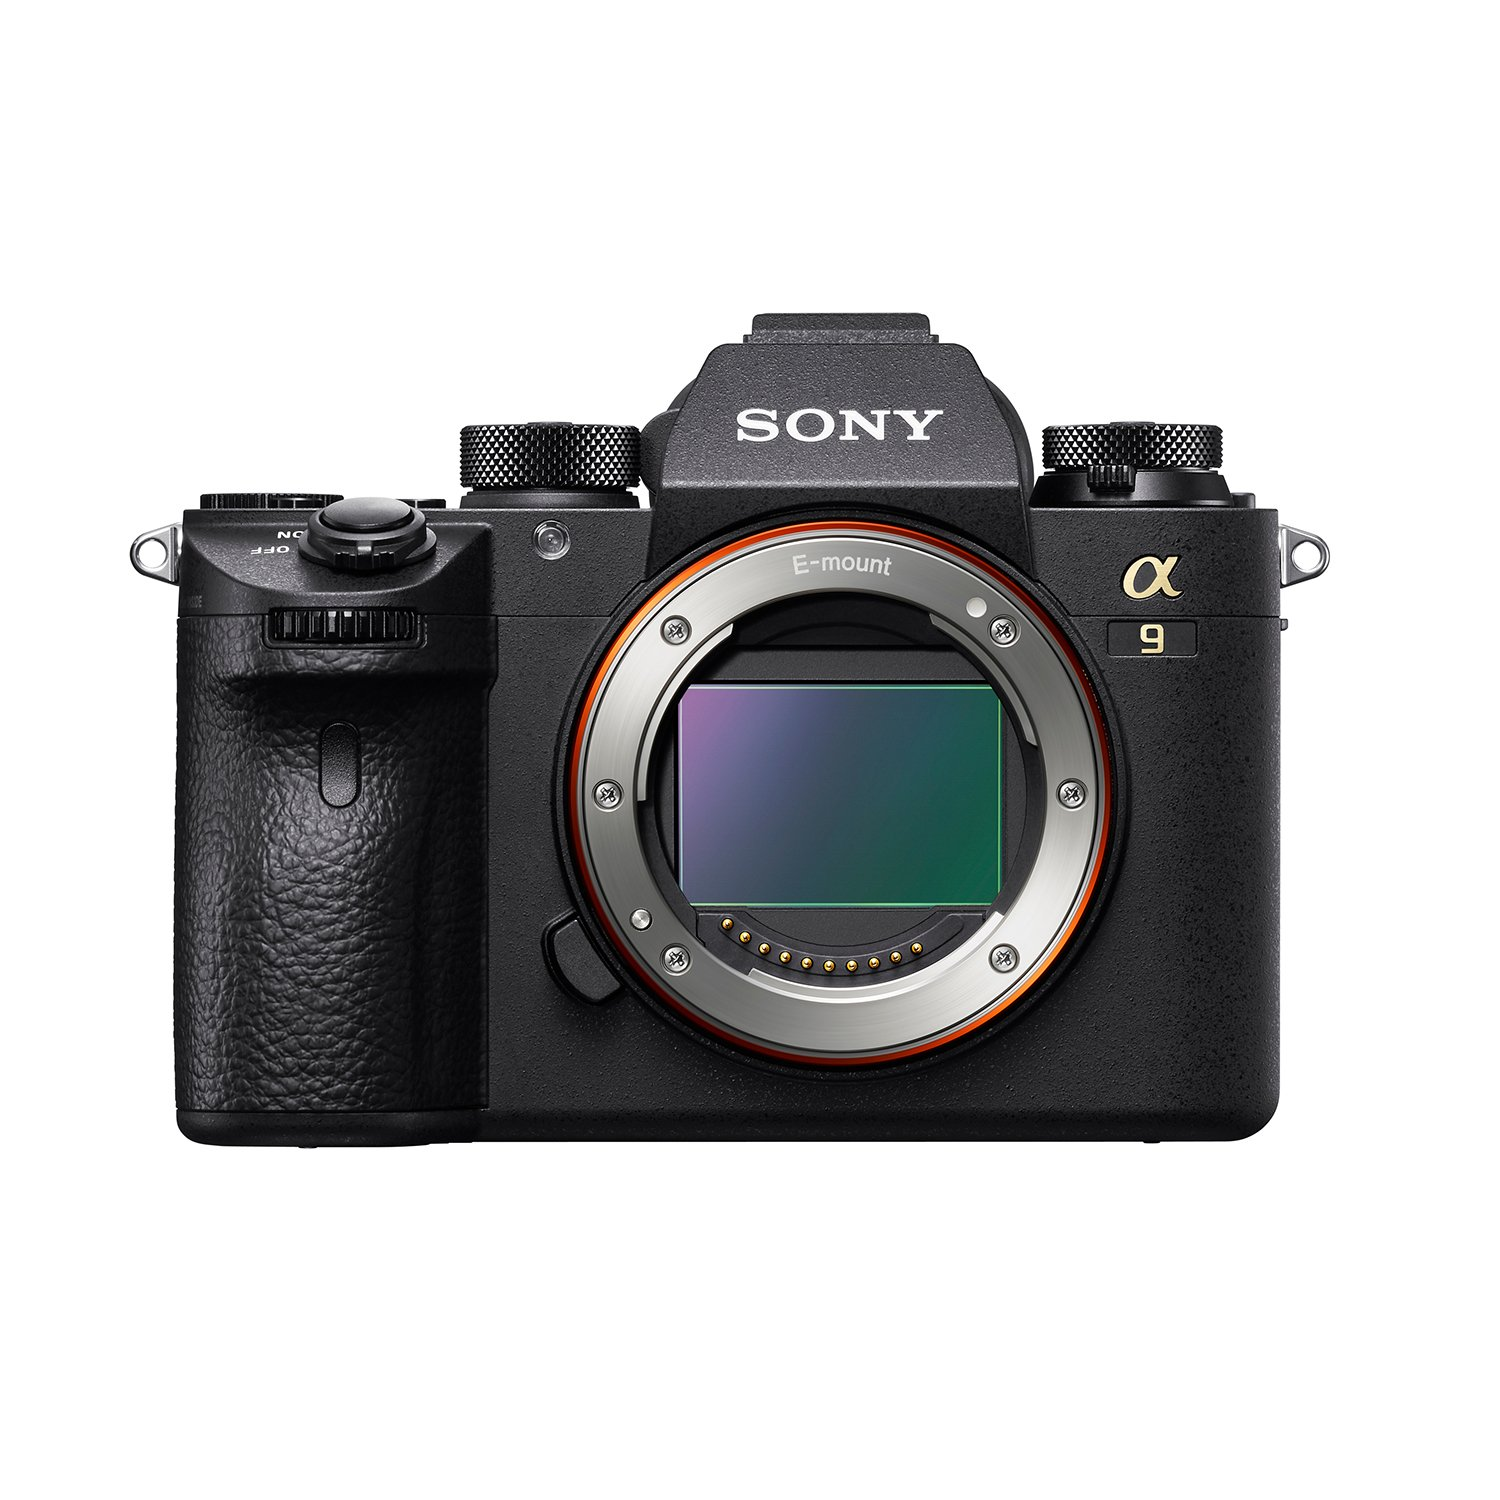 Sony ILCE 9 Full Frame 24.2MP Mirrorless Camera